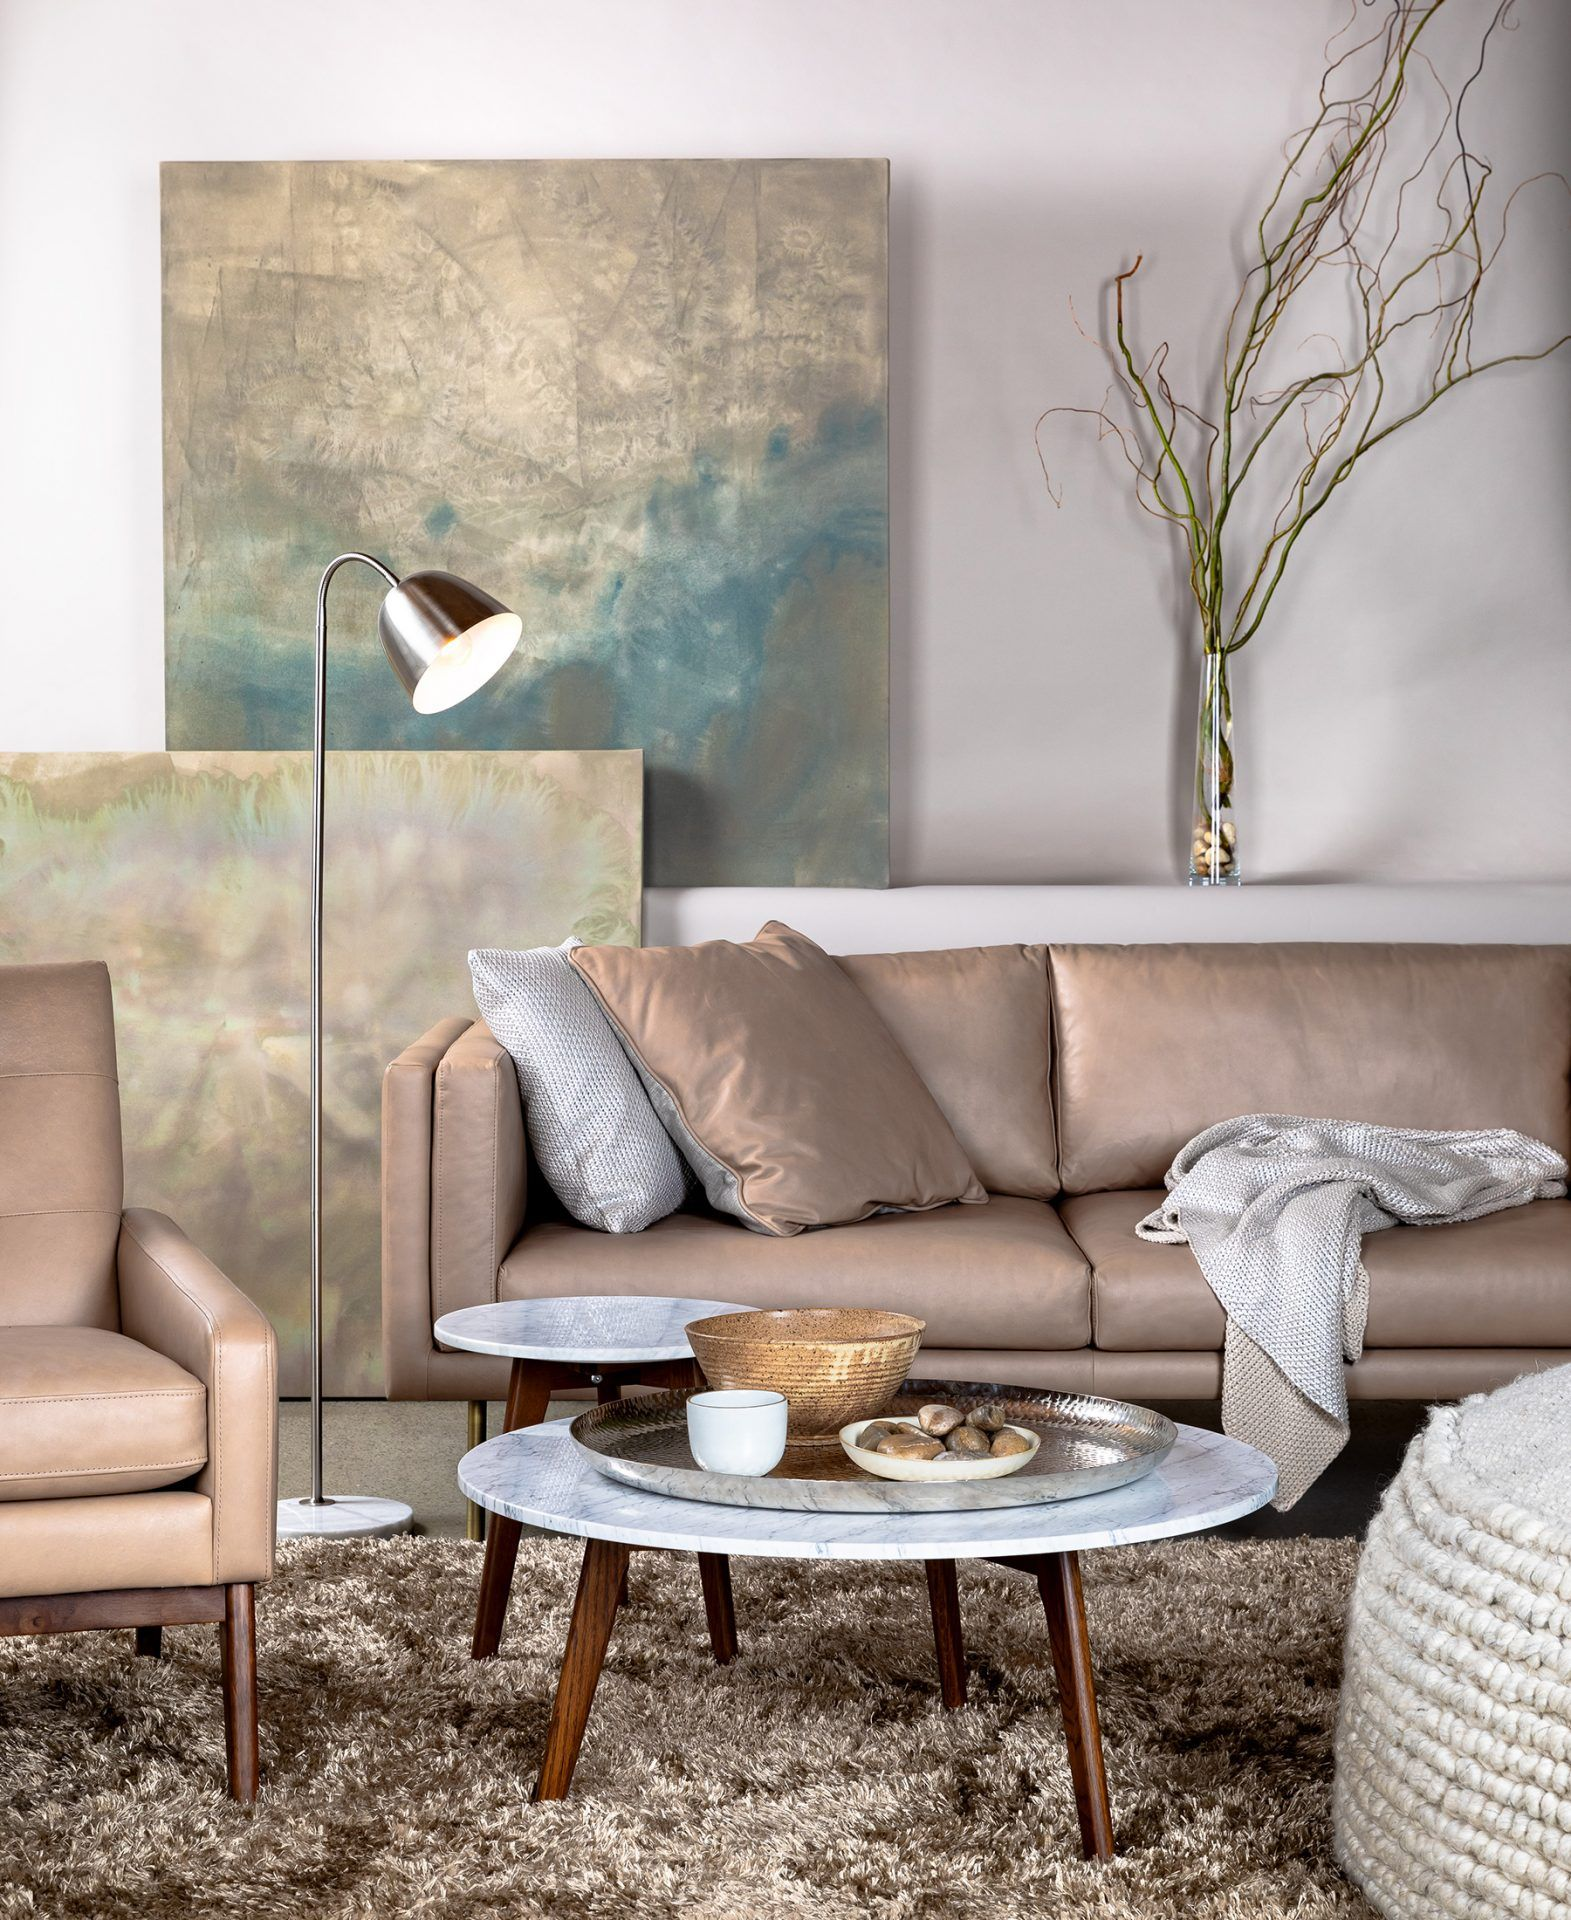 How To Choose A Sofa Color For Your Living Room Articulate Taupe Sofa Living Room Taupe Living Room Leather Living Room Set Mink living room decor